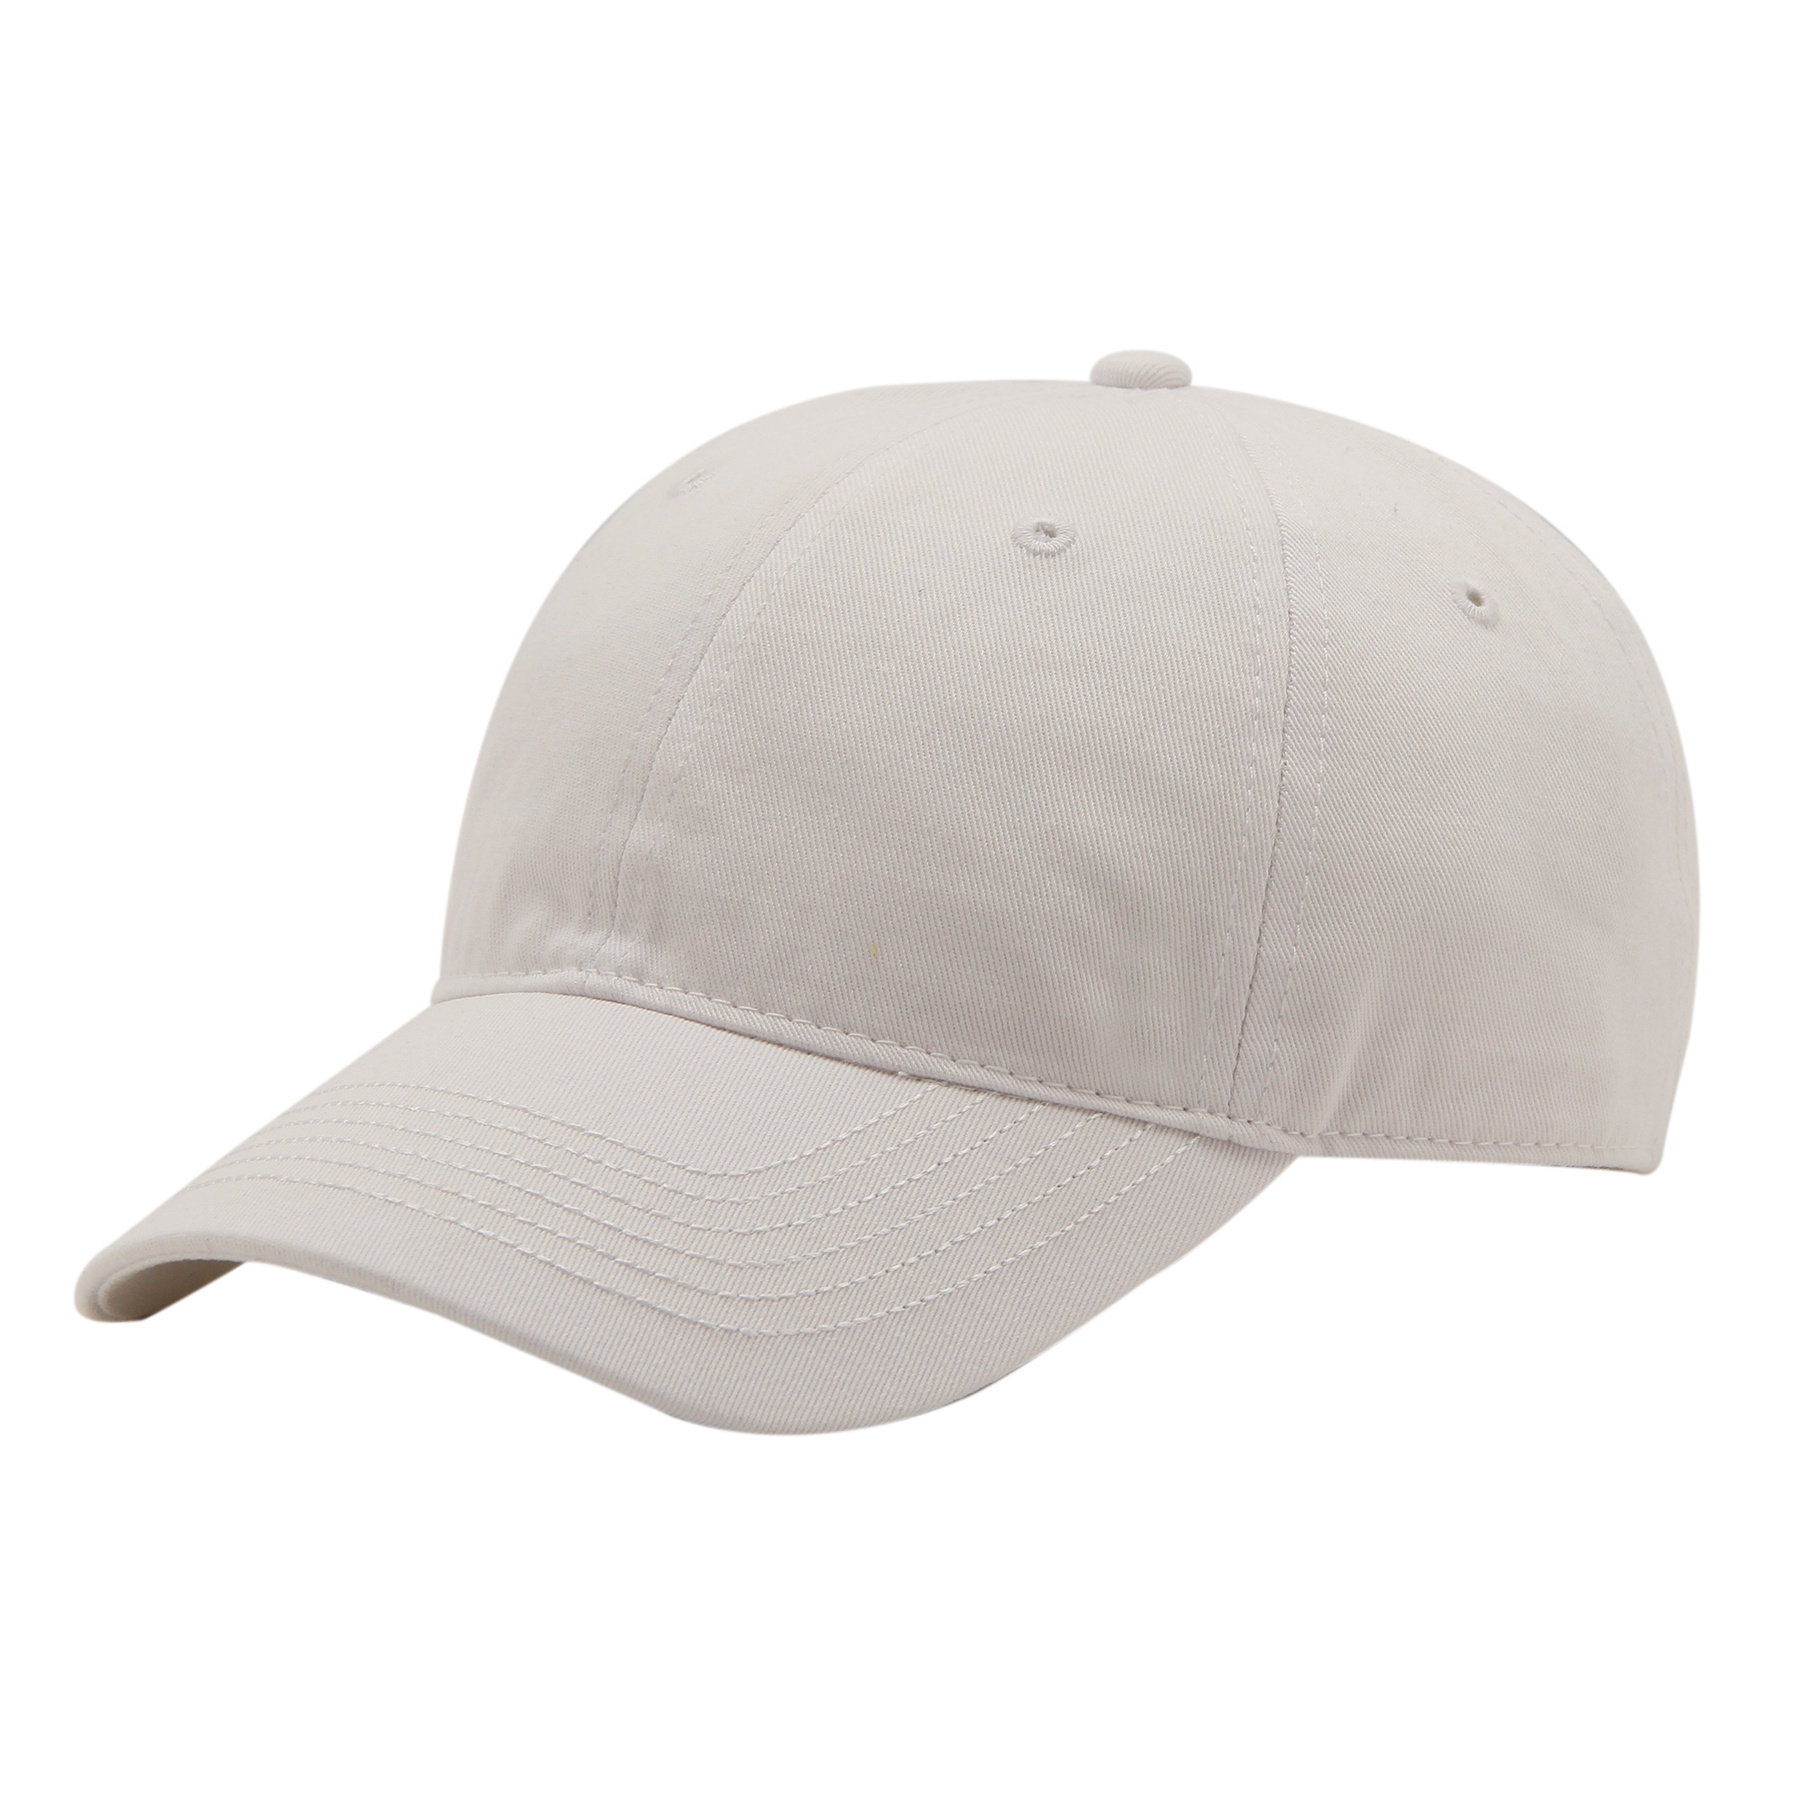 Ouray Sportswear Unisex-Adult Small Fit Performance Epic Cap